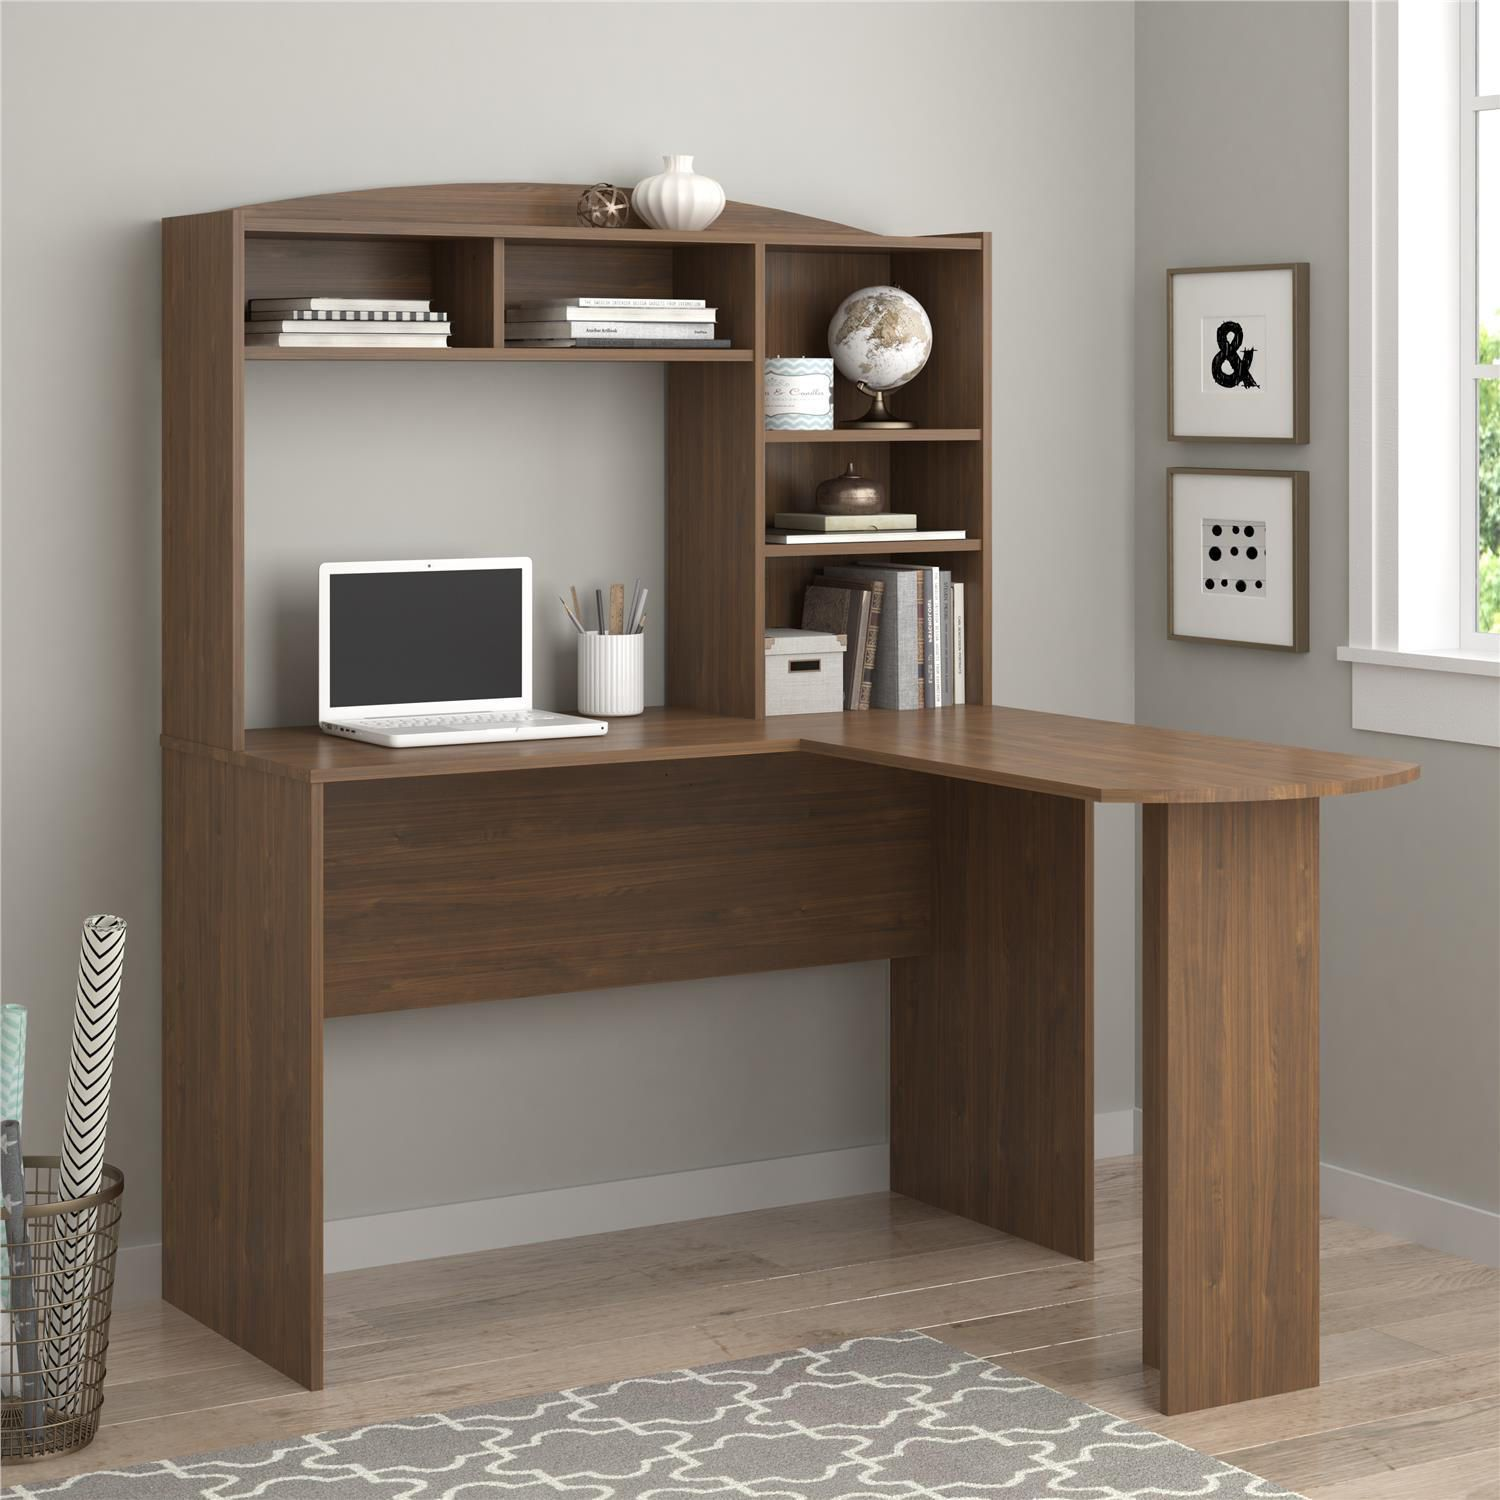 Office Depot Hutch L Desk With Bookcase Front Window